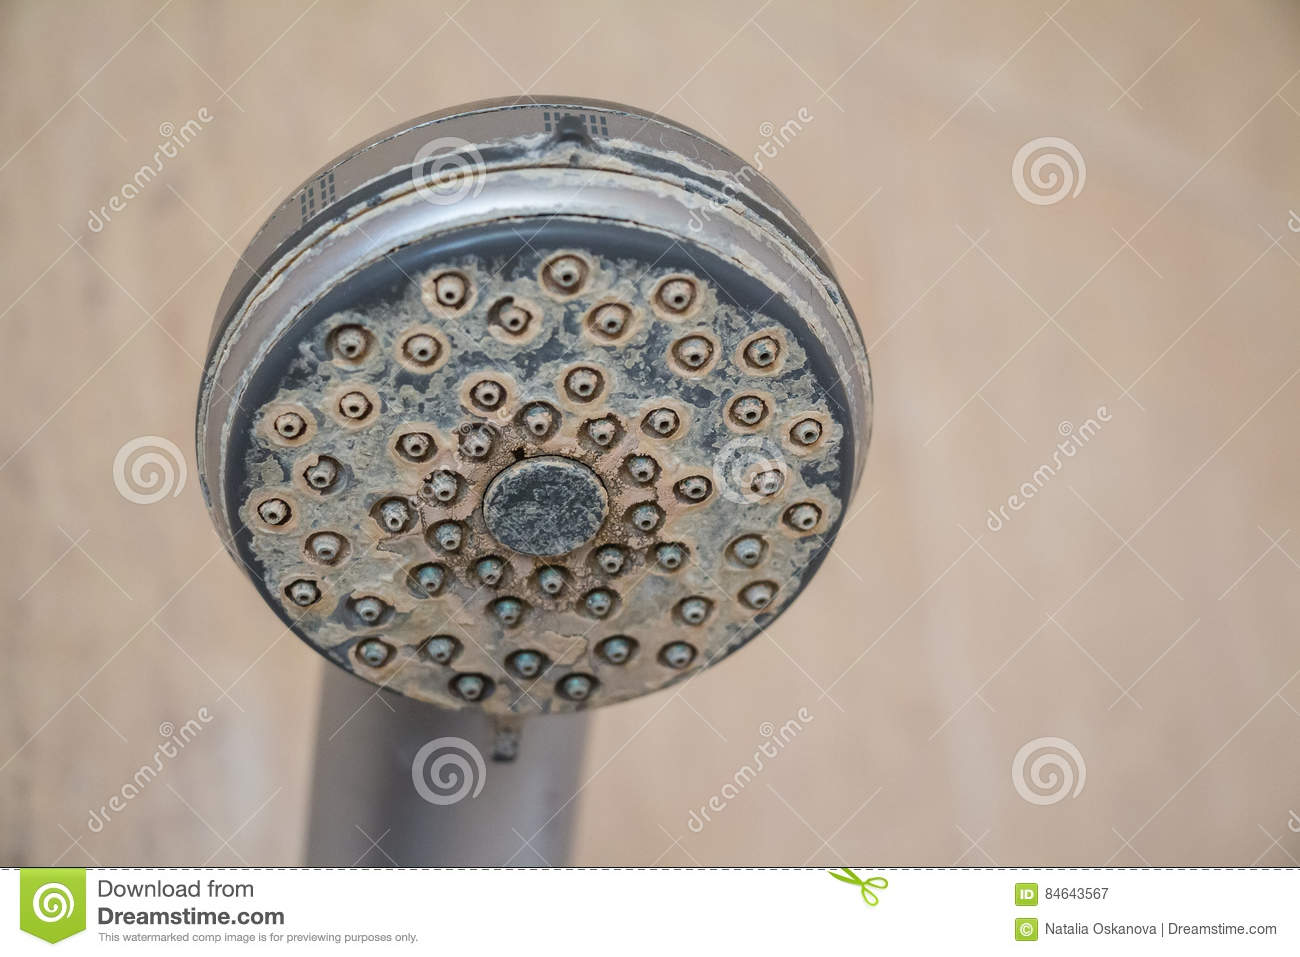 Hard Water Deposit And Rust On Shower Tap Stock Image - Image of ...